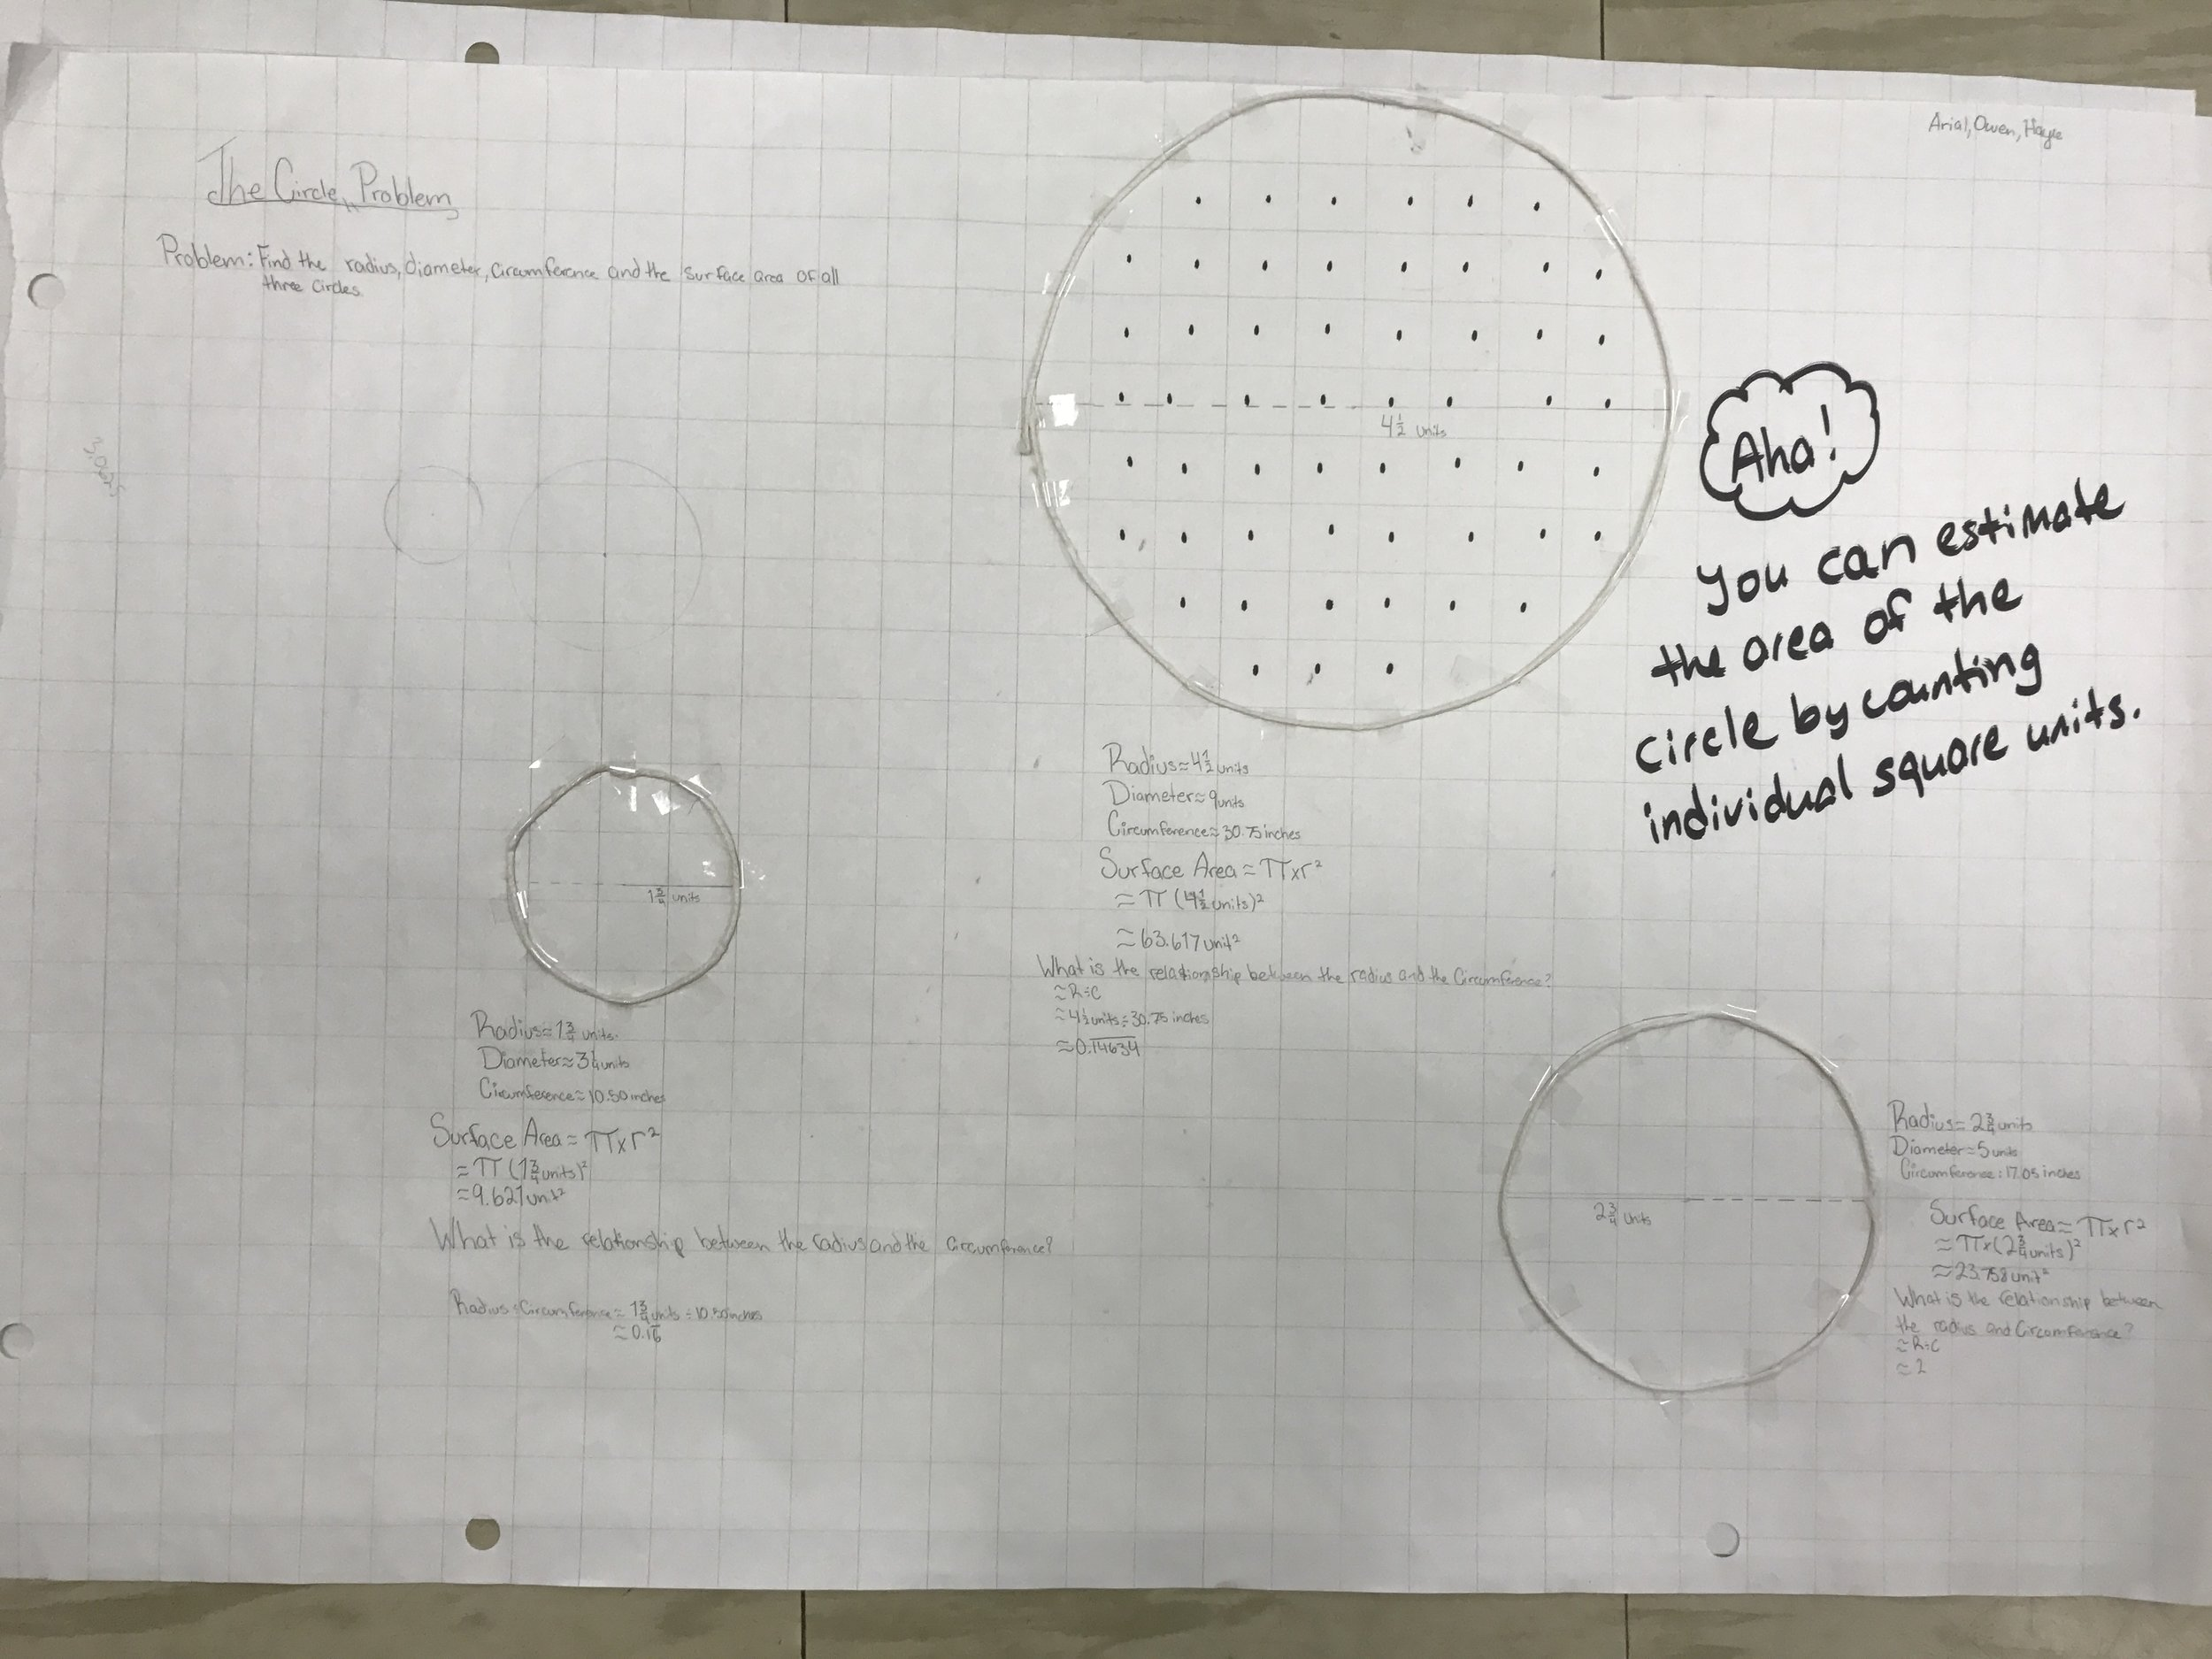 2016-11-16-area-and-circumference-of-circles-barr-3.jpg